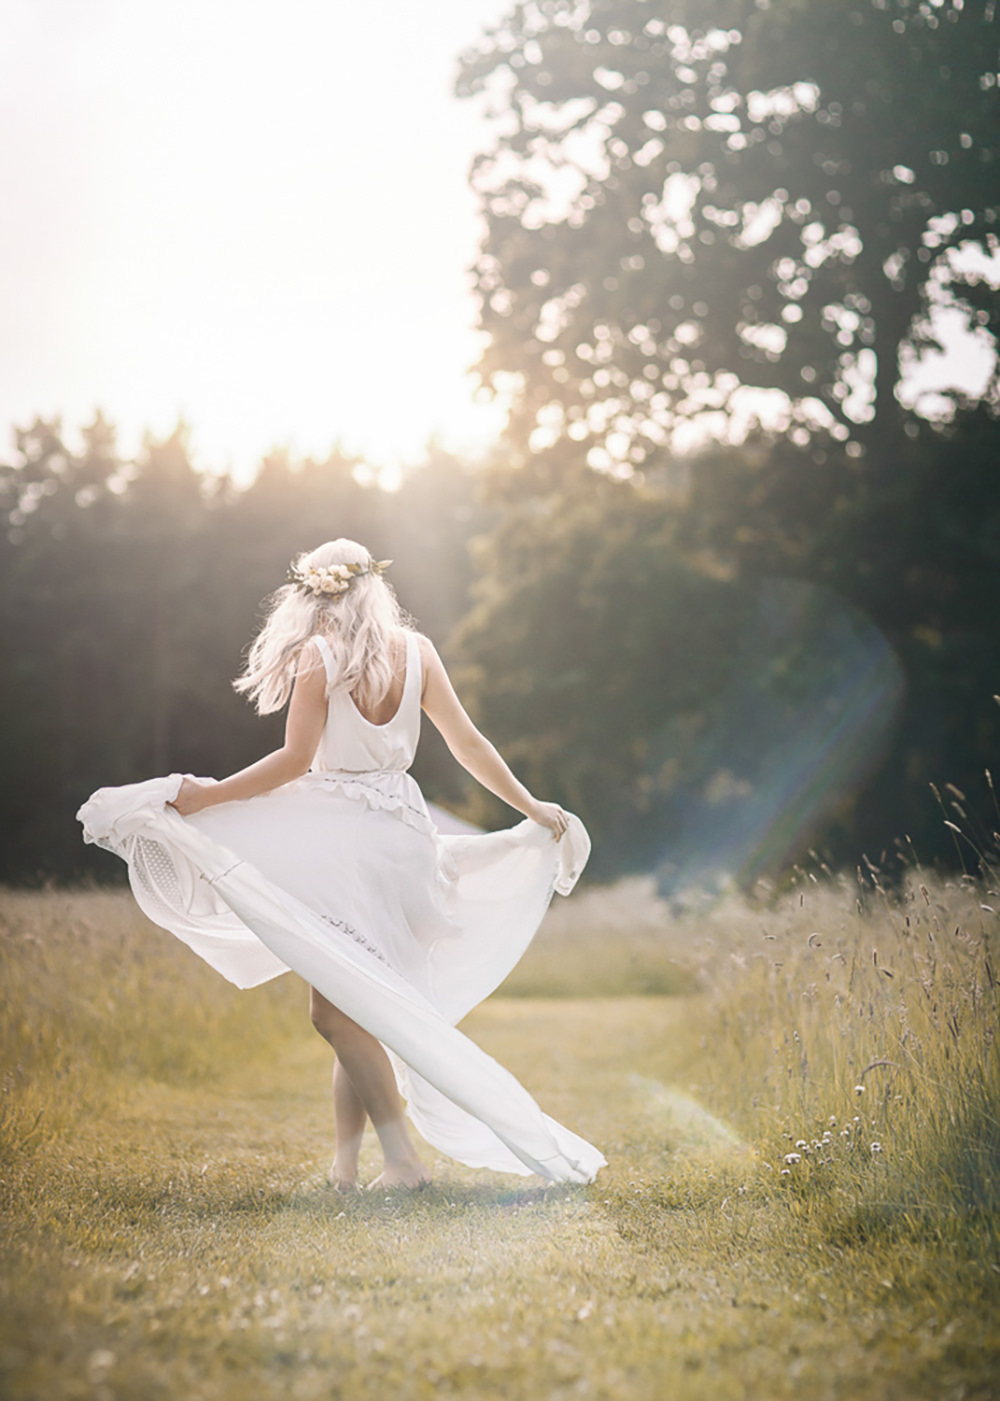 Bride Bridal Dress Gown Polka Dot Tulle Ruffle Train Bohemian Free Spirited Wedding Ideas Woodland Lumiere Photographic